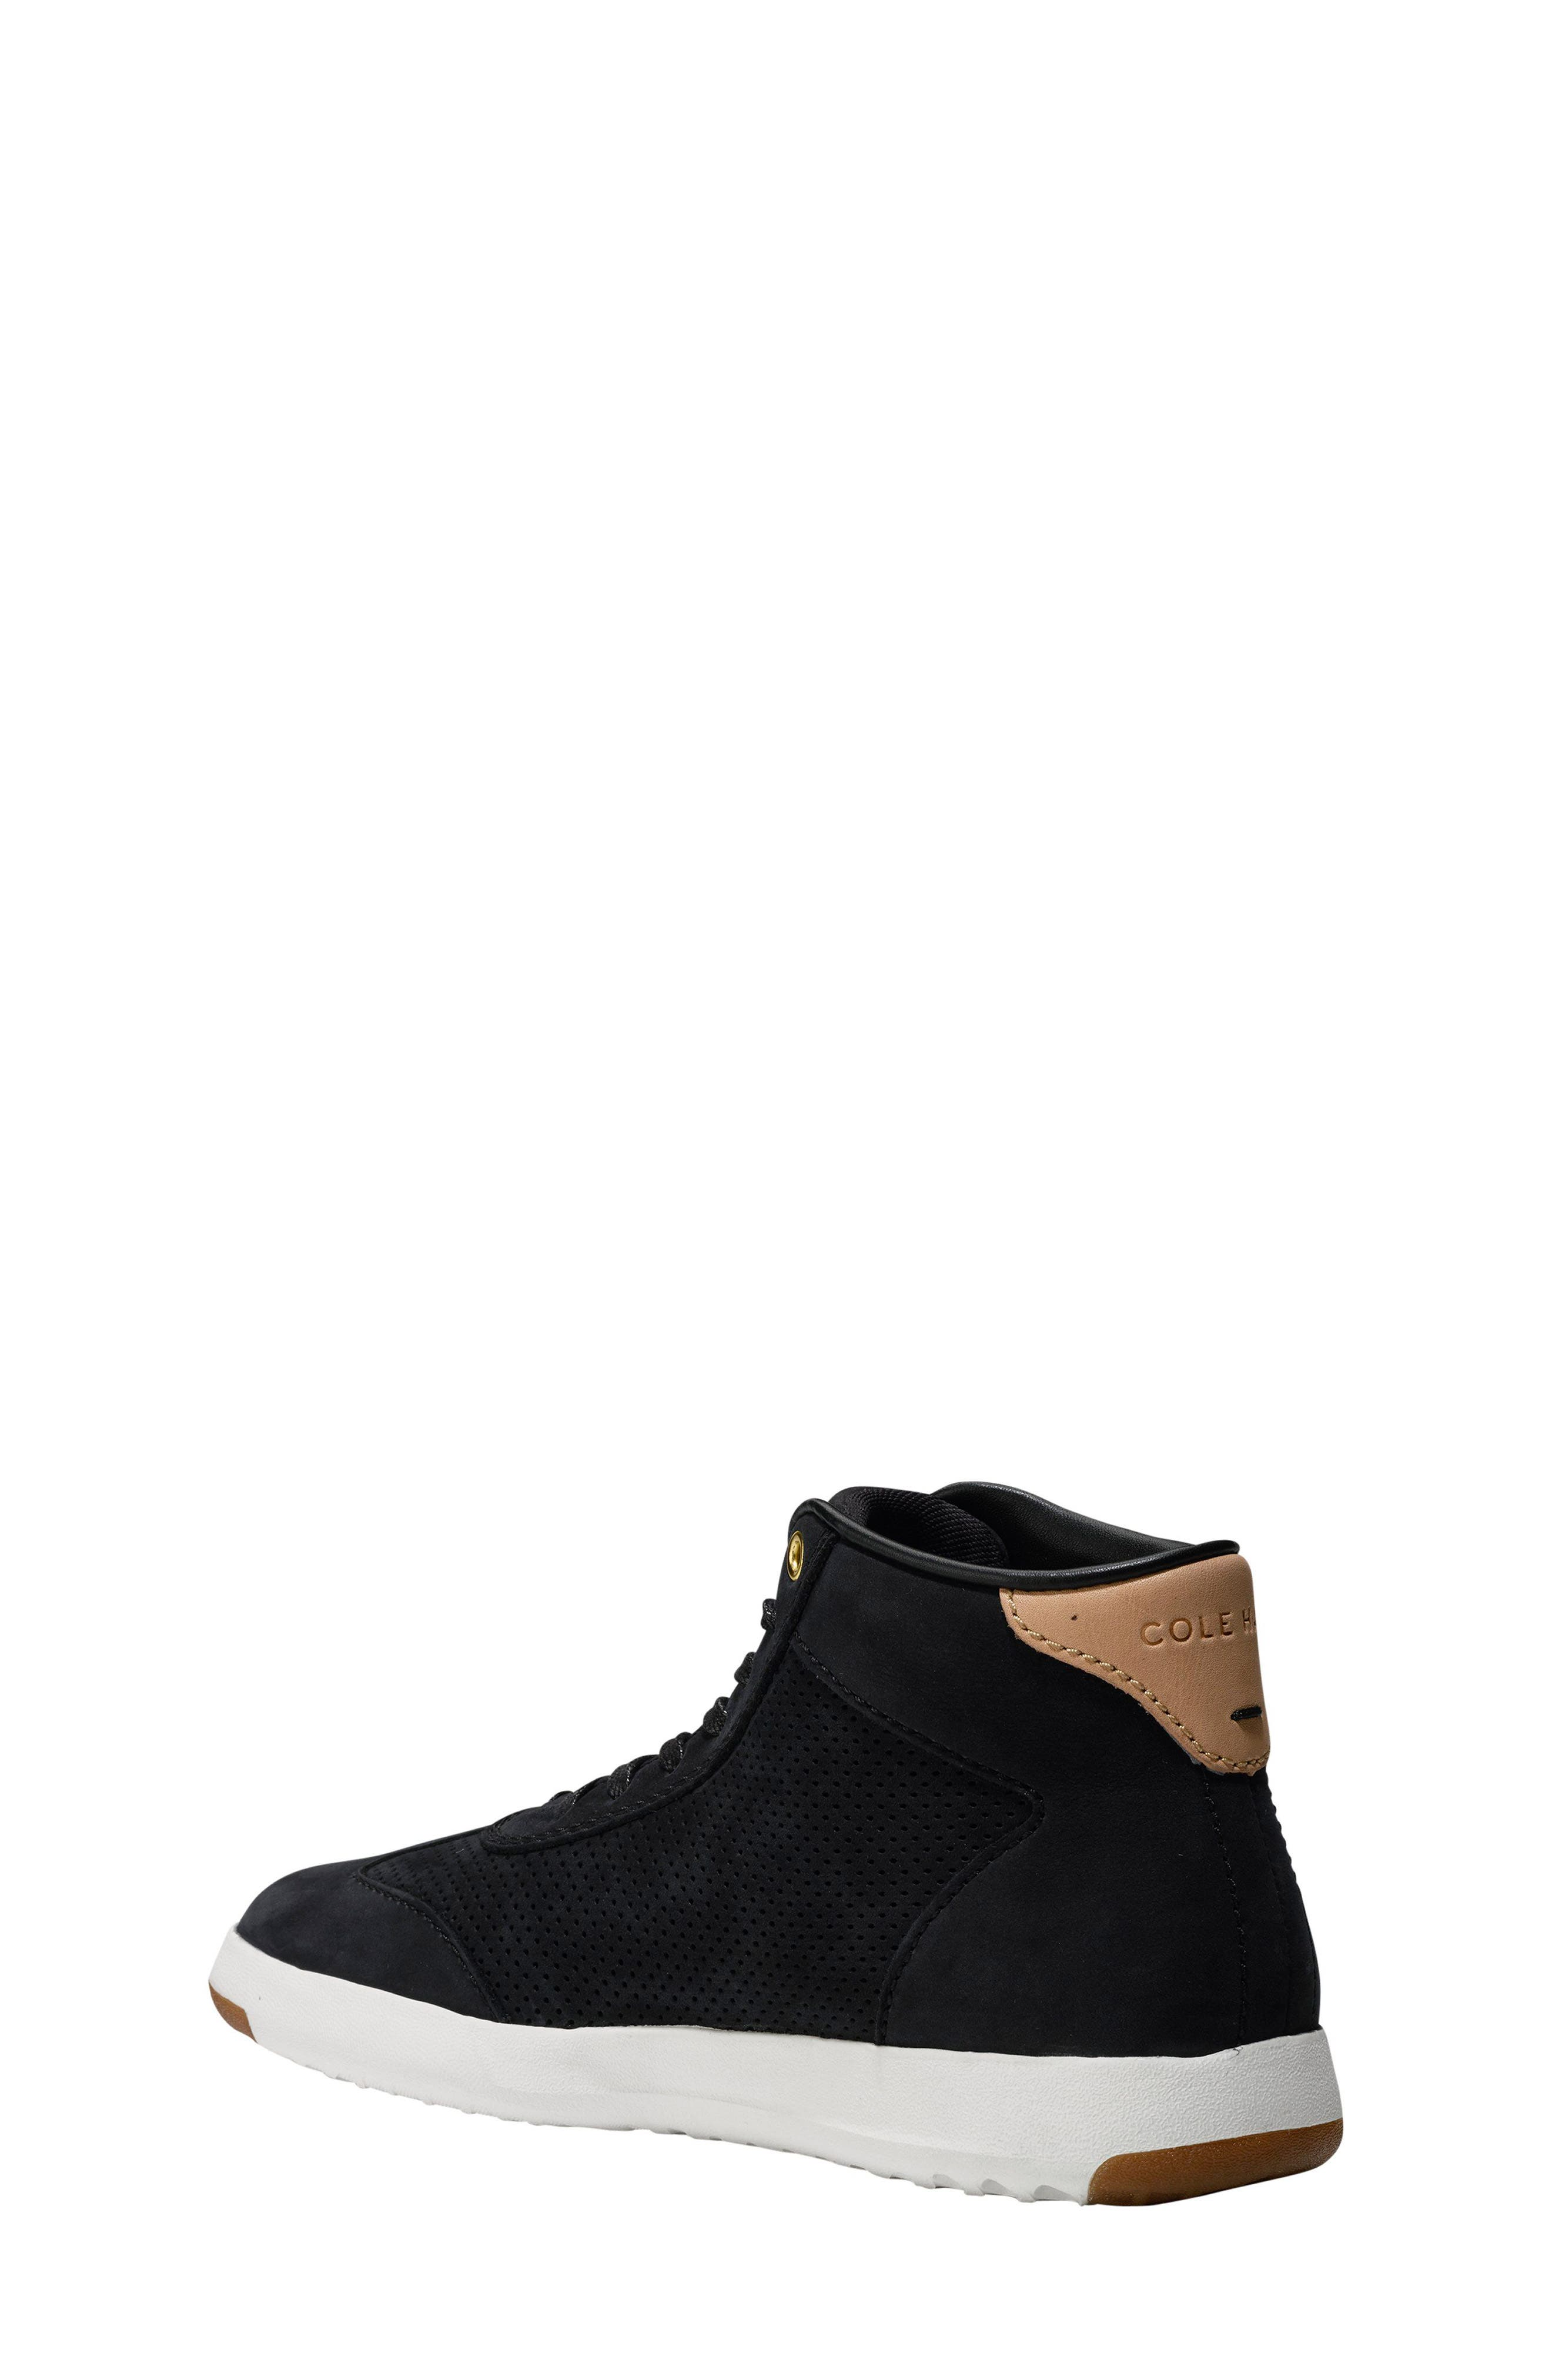 GrandPro High Top Sneaker,                             Alternate thumbnail 2, color,                             Black Nubuck Leather